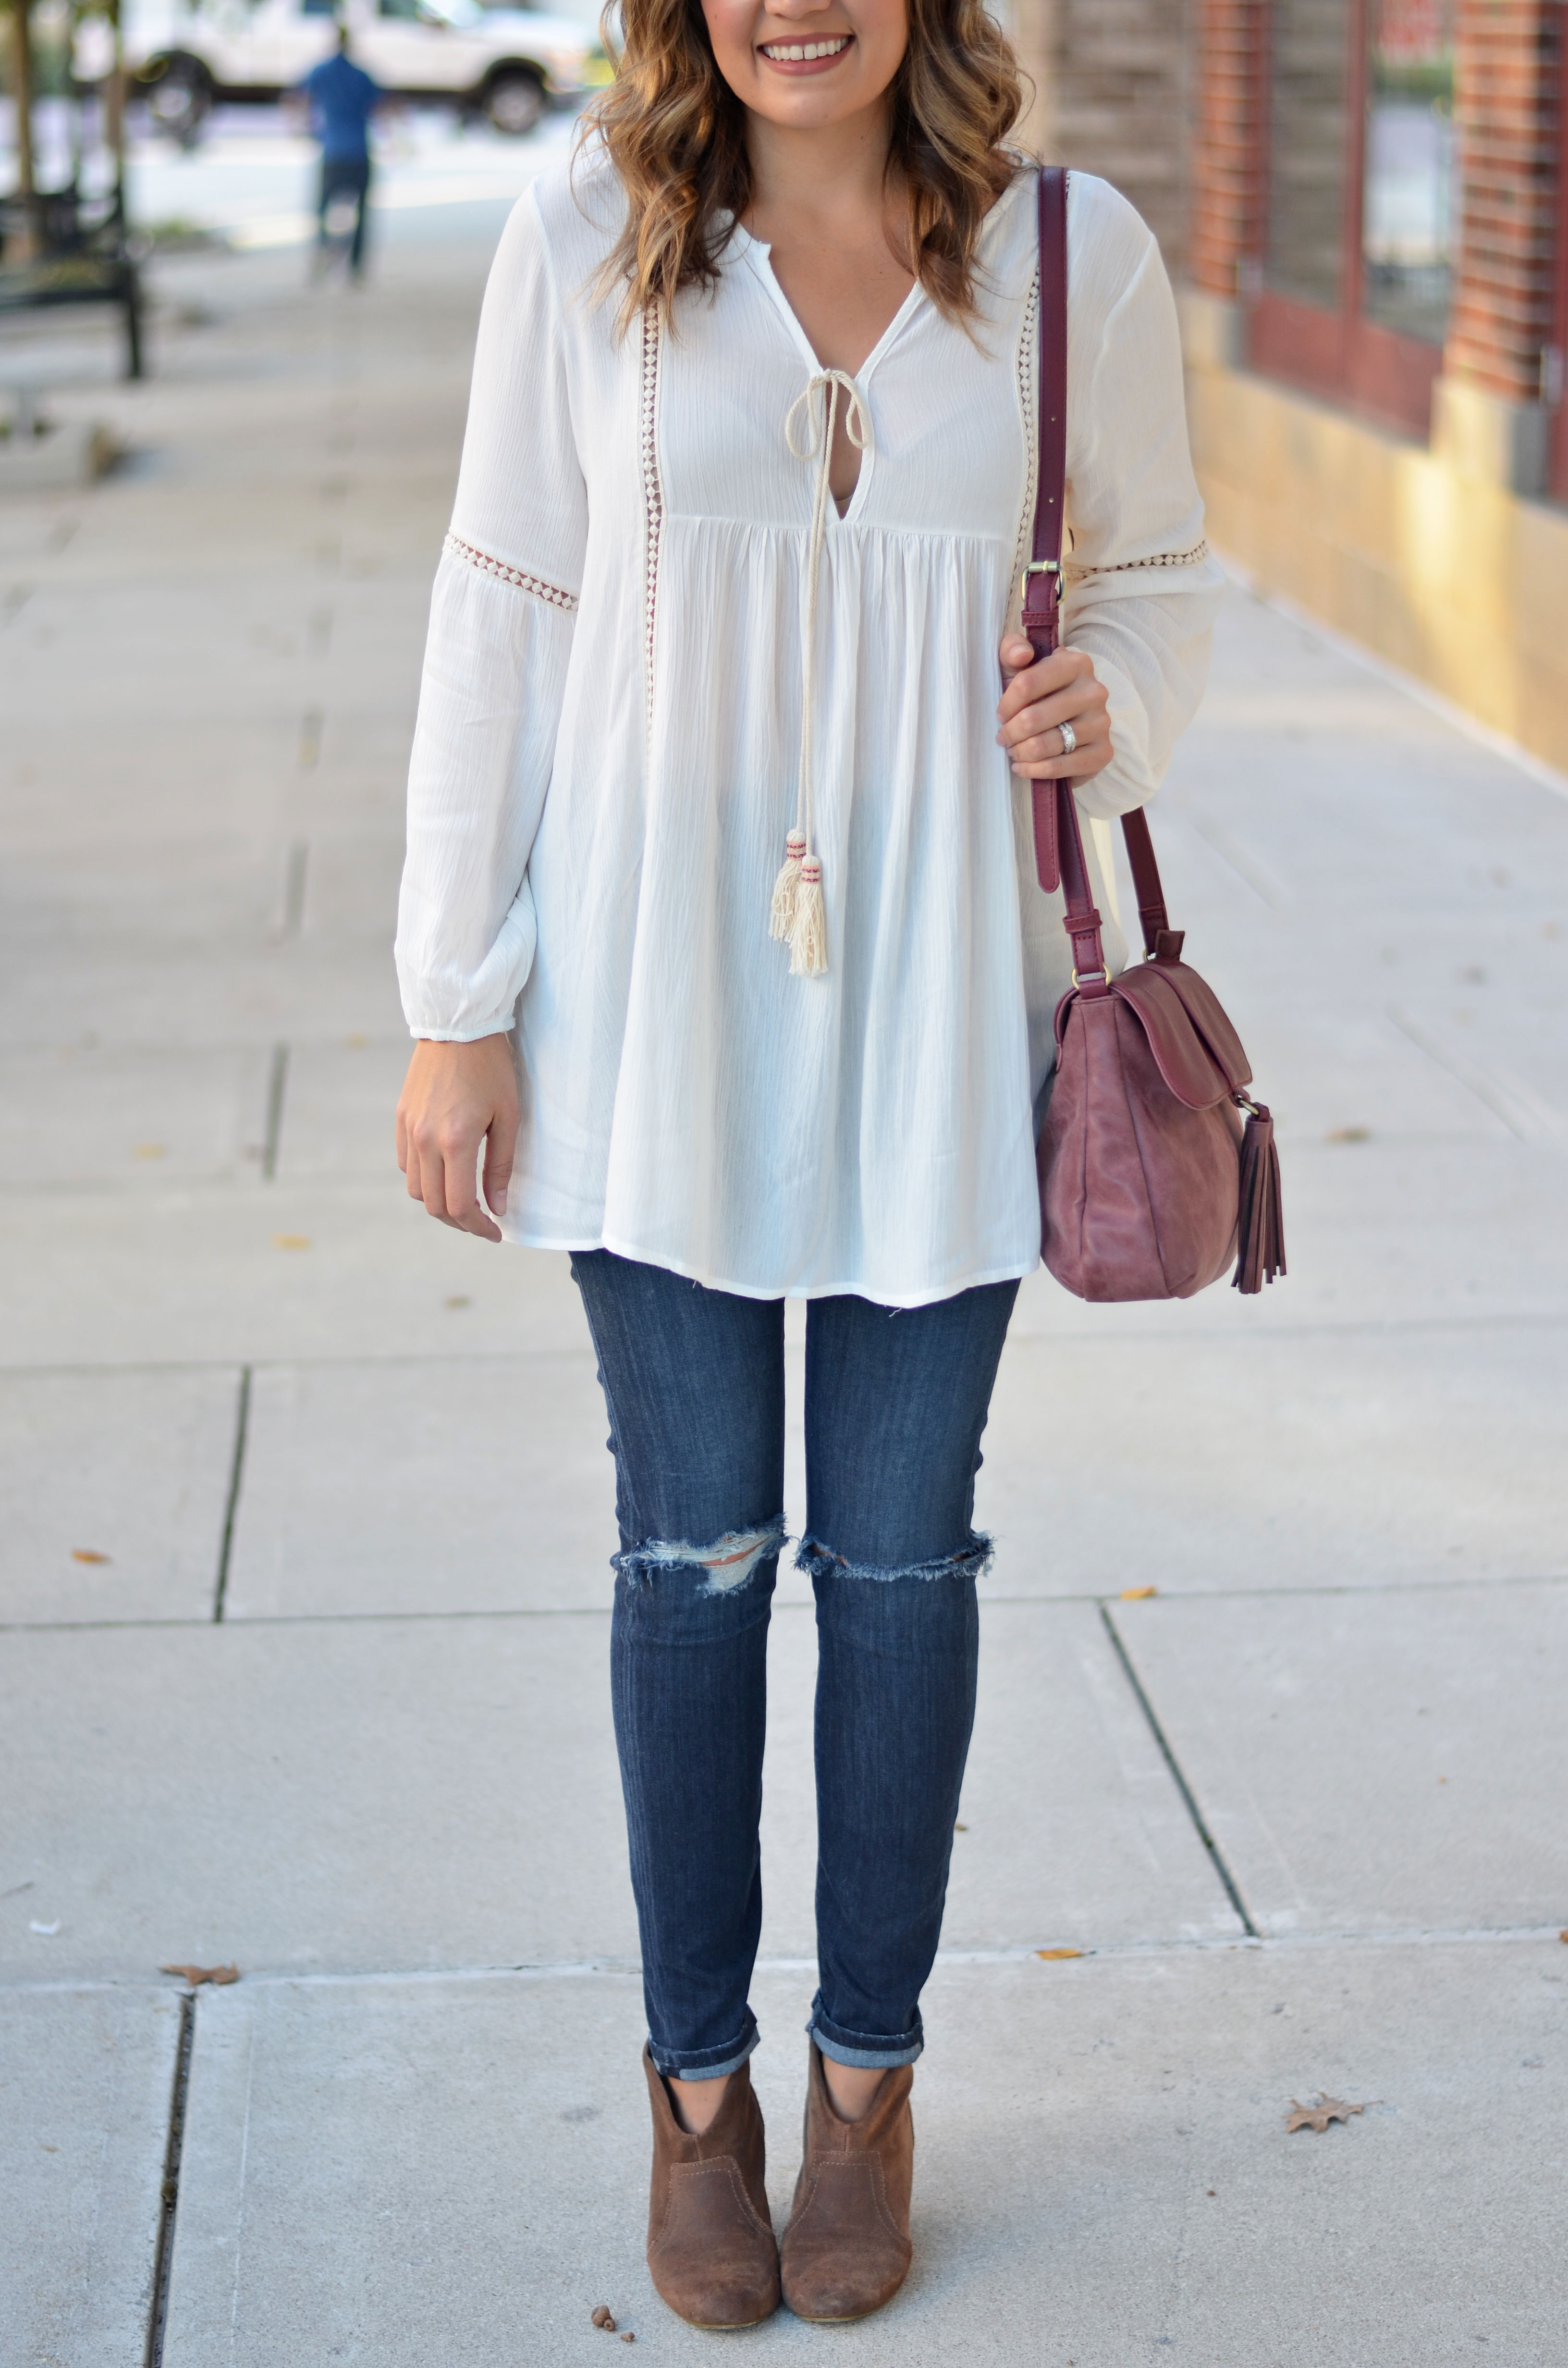 how to wear a peasant top - white peasant top with distressed skinny jeans and tan booties | www.bylaurenm.com